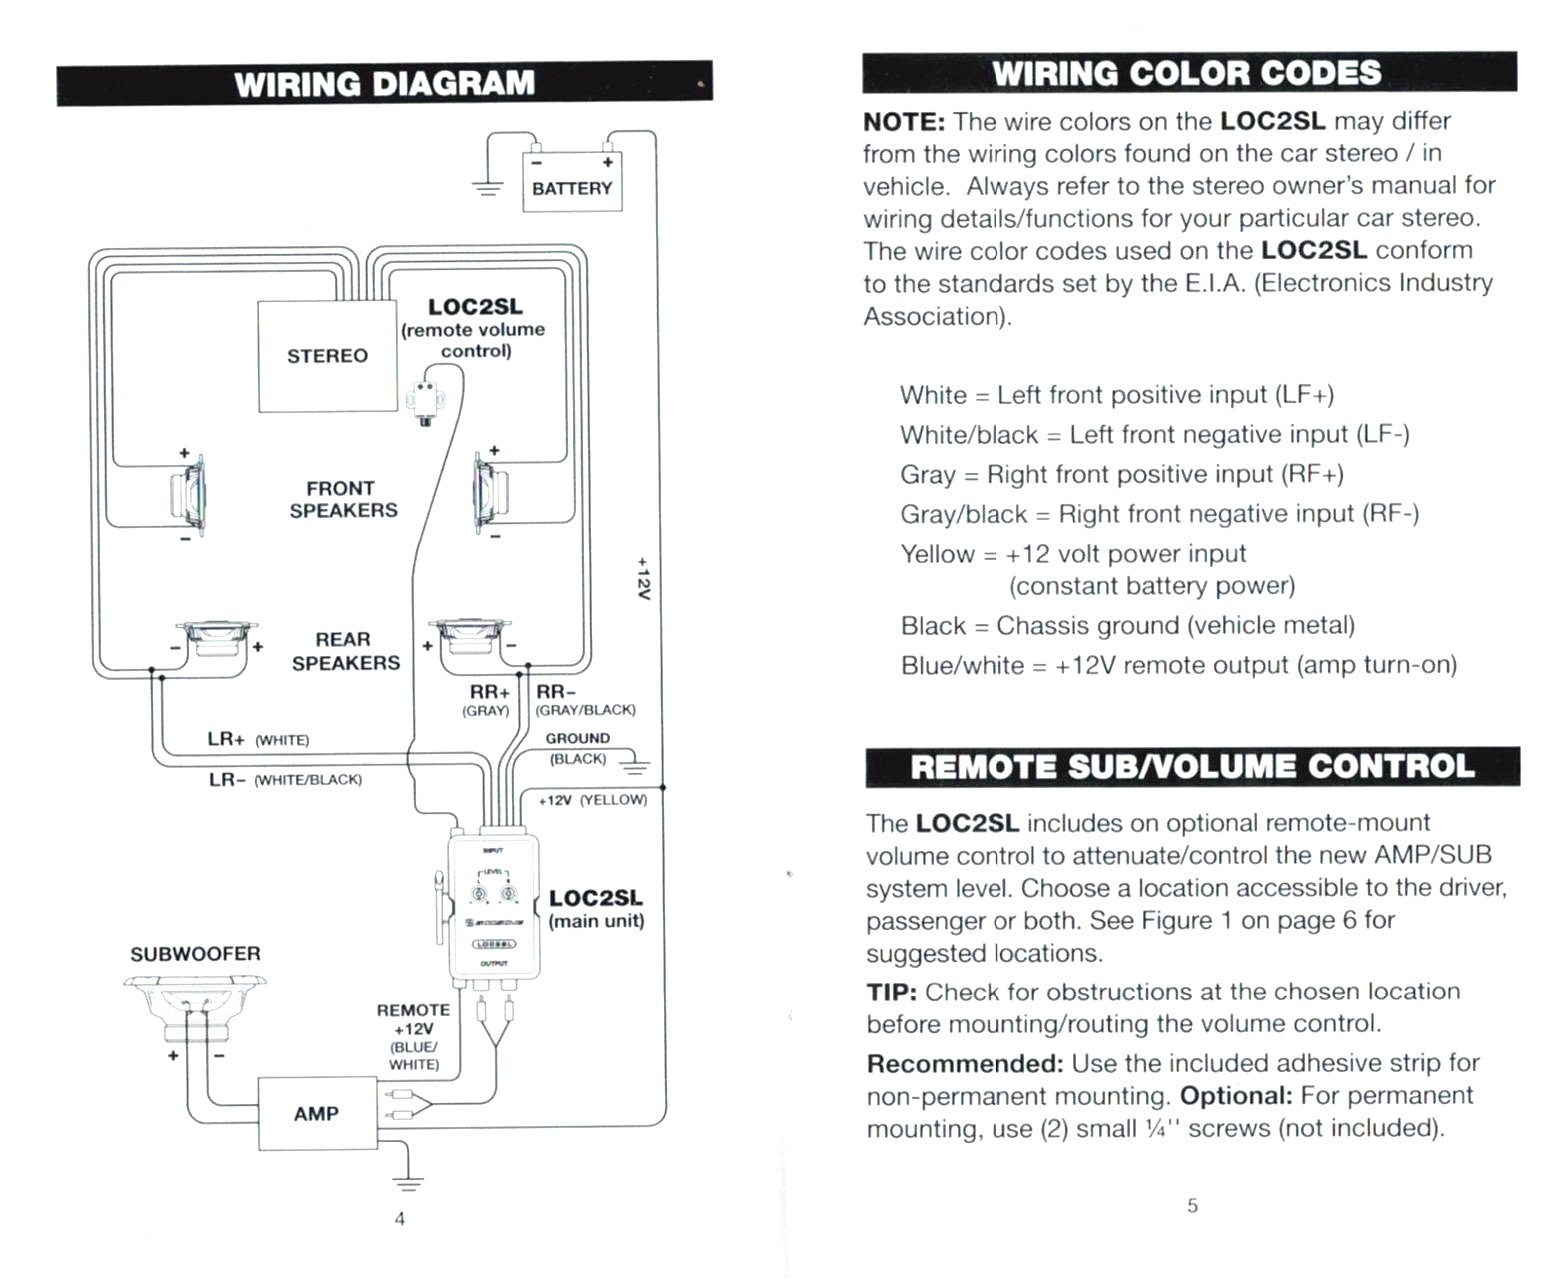 Radio Wiring Diagram For 2013 Dodge Journey Sxt Fwd